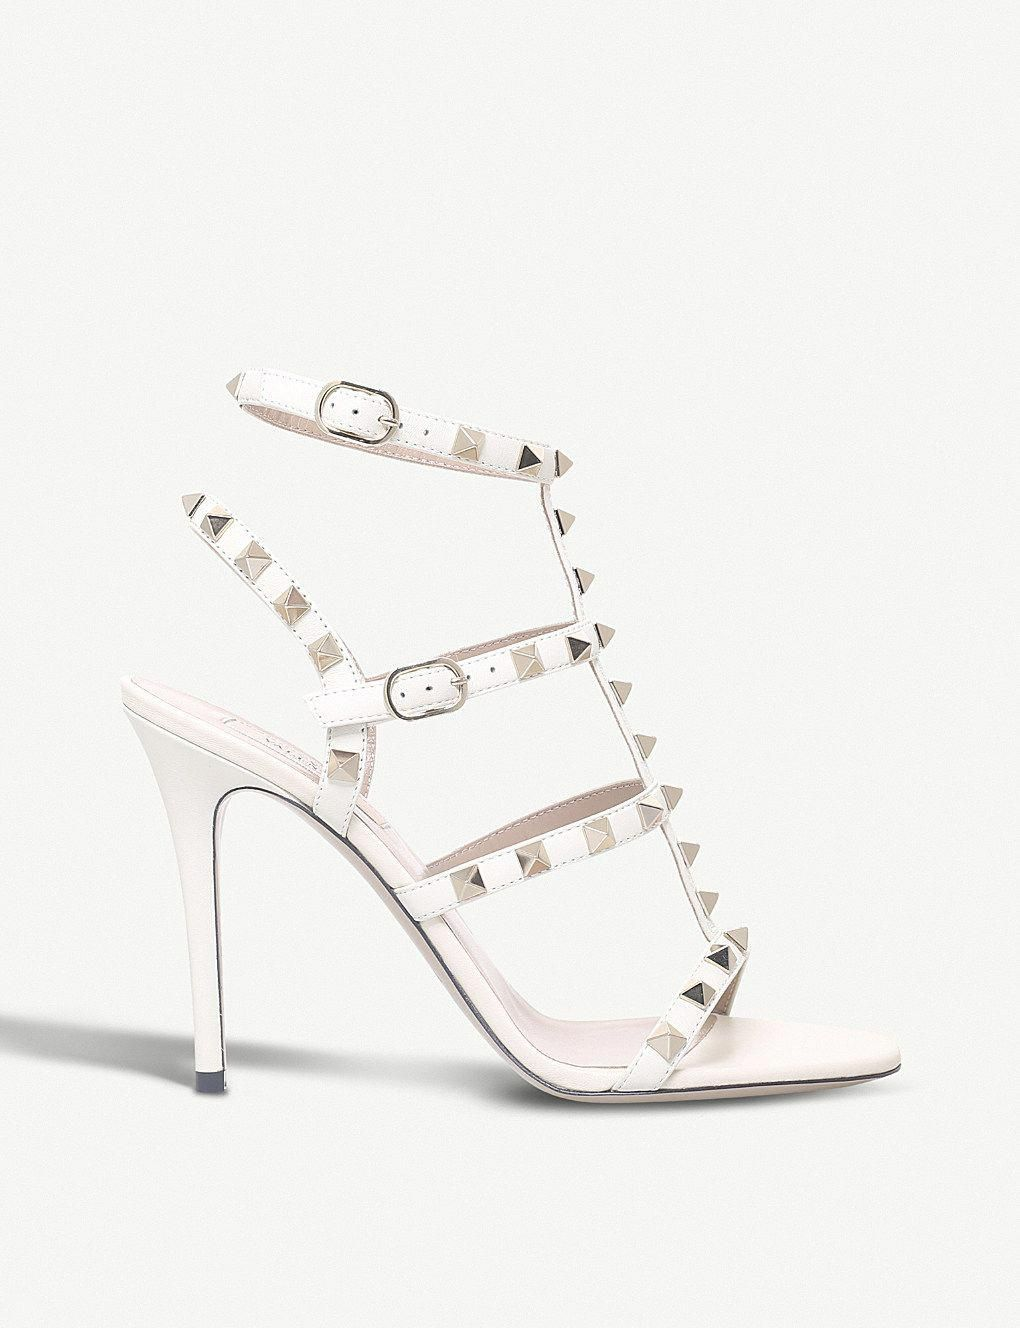 71144620eb4 VALENTINO - Rockstud 105 leather heeled gladiator sandals ...